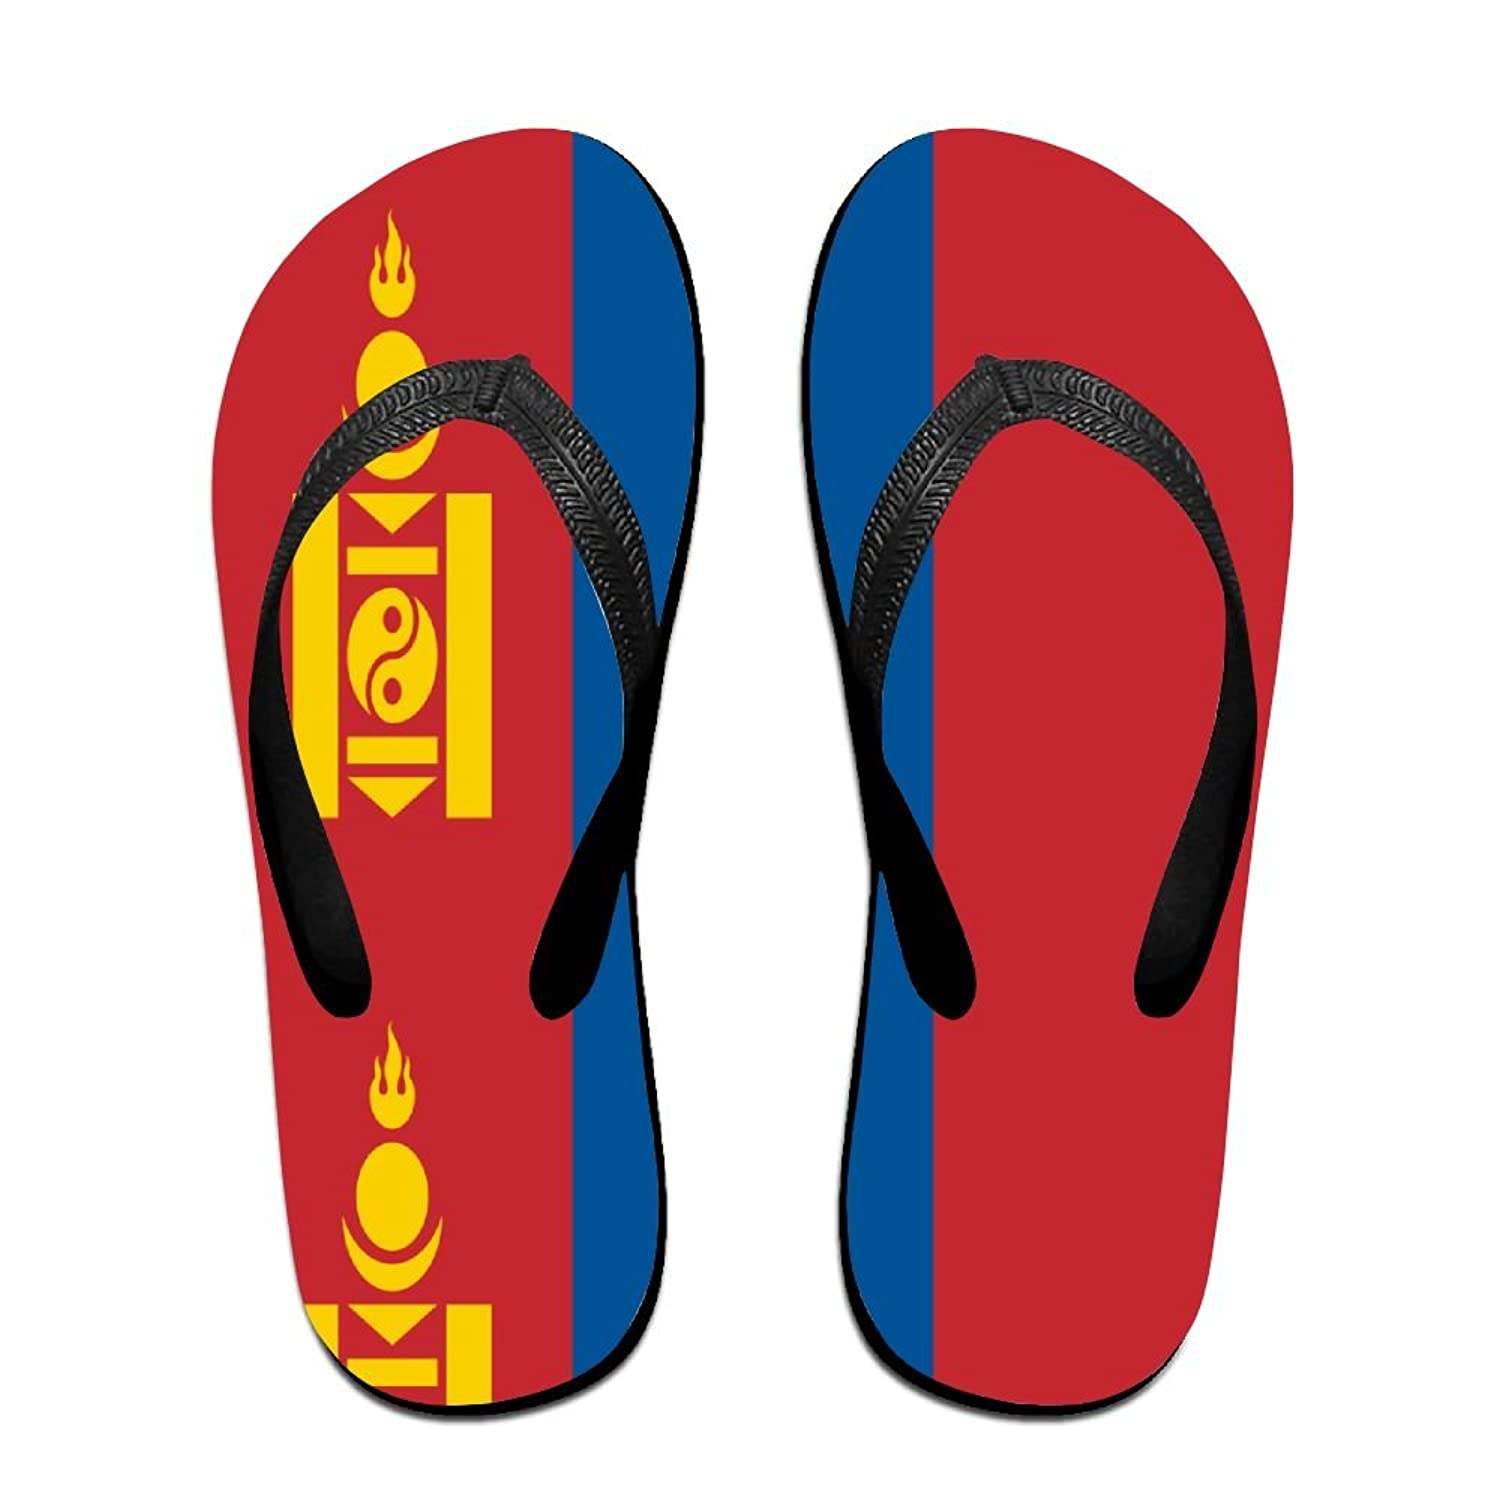 Flag Of Mongolia Cool Flip Flops For Children Adults Men And Women Beach Sandals Pool Party Slippers